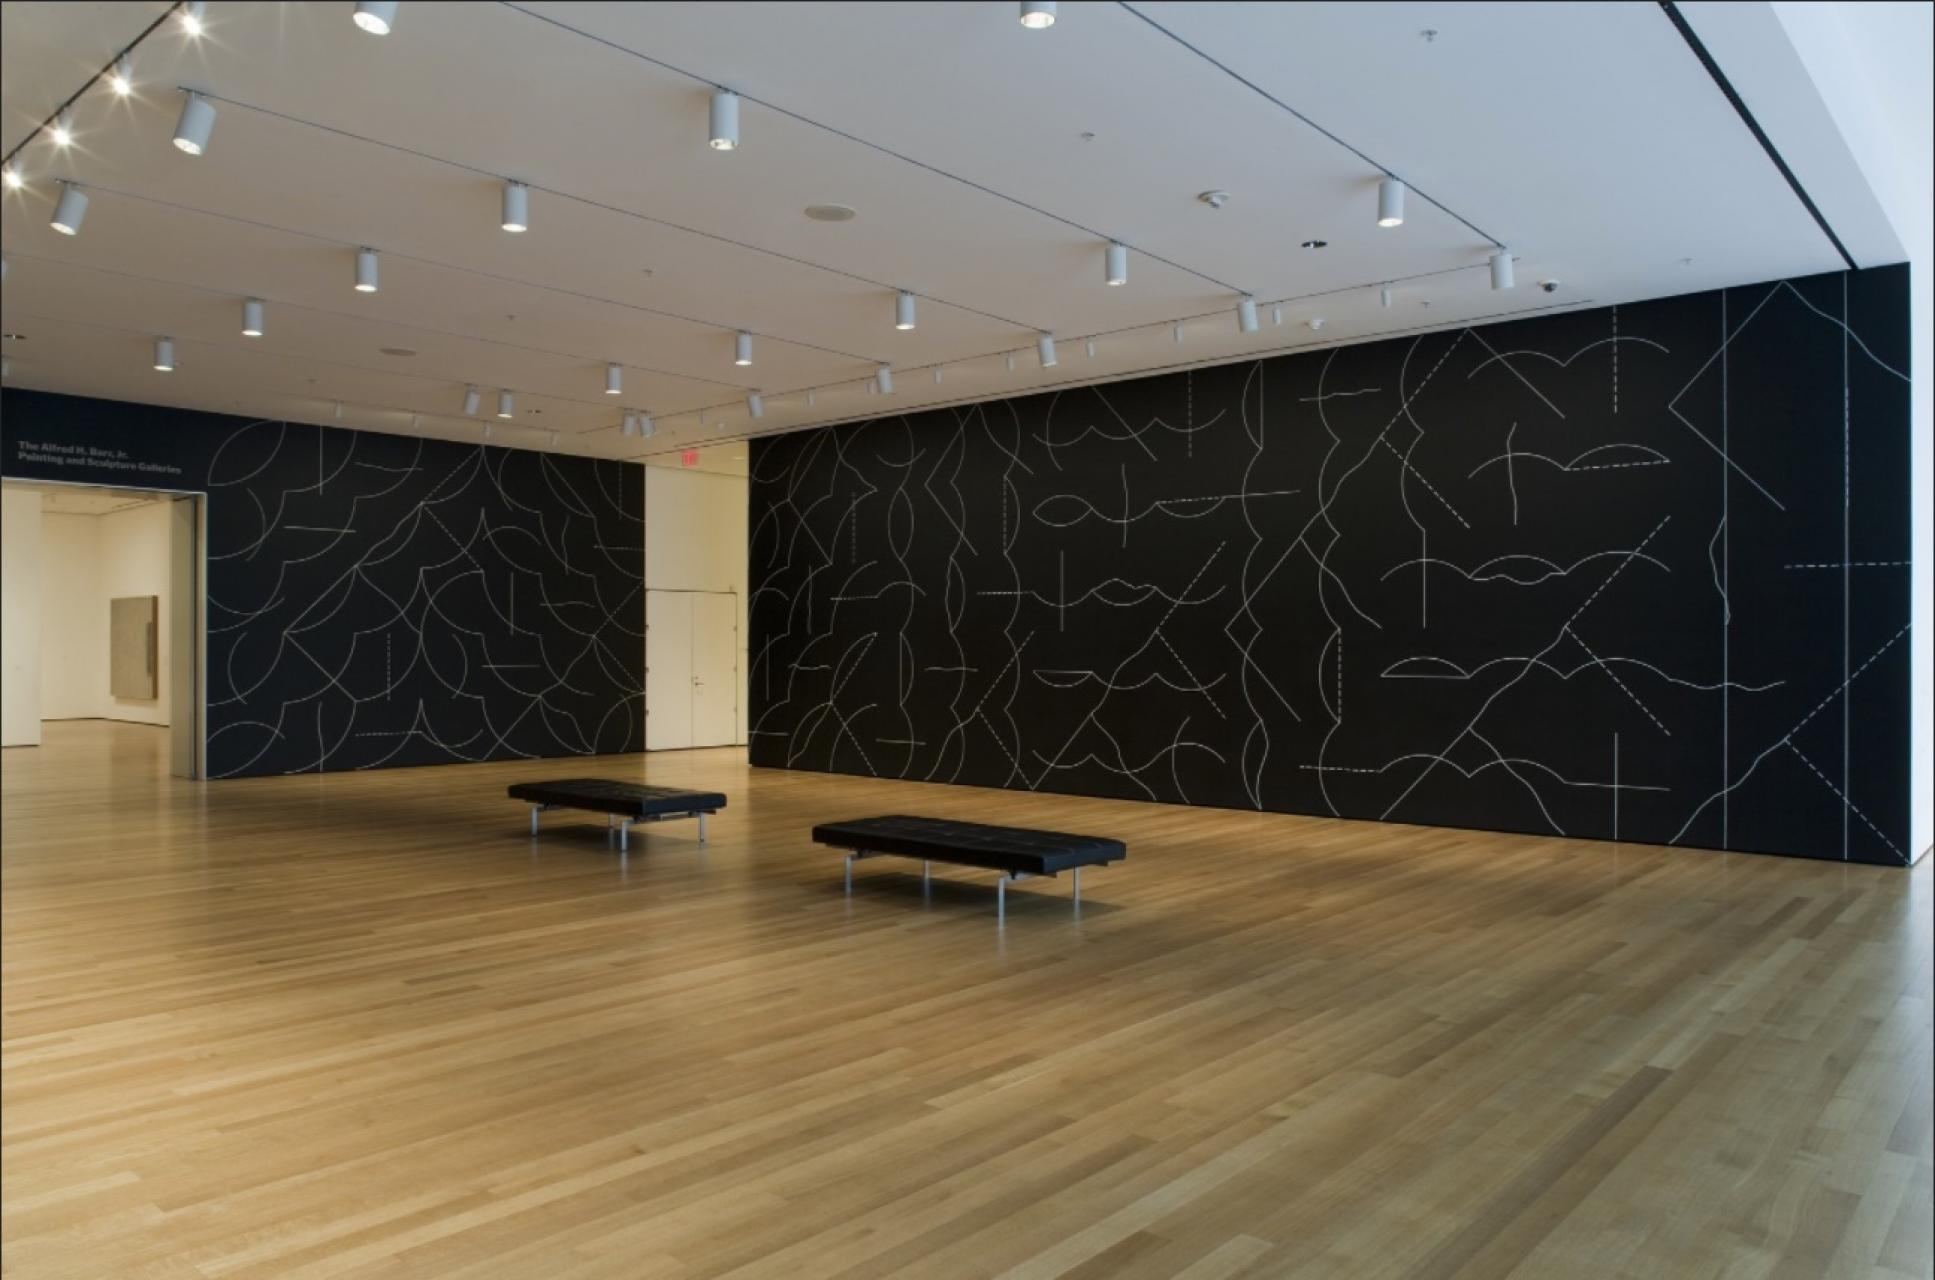 """Focus"" by Sol LeWitt at the Museum of Modern Art 